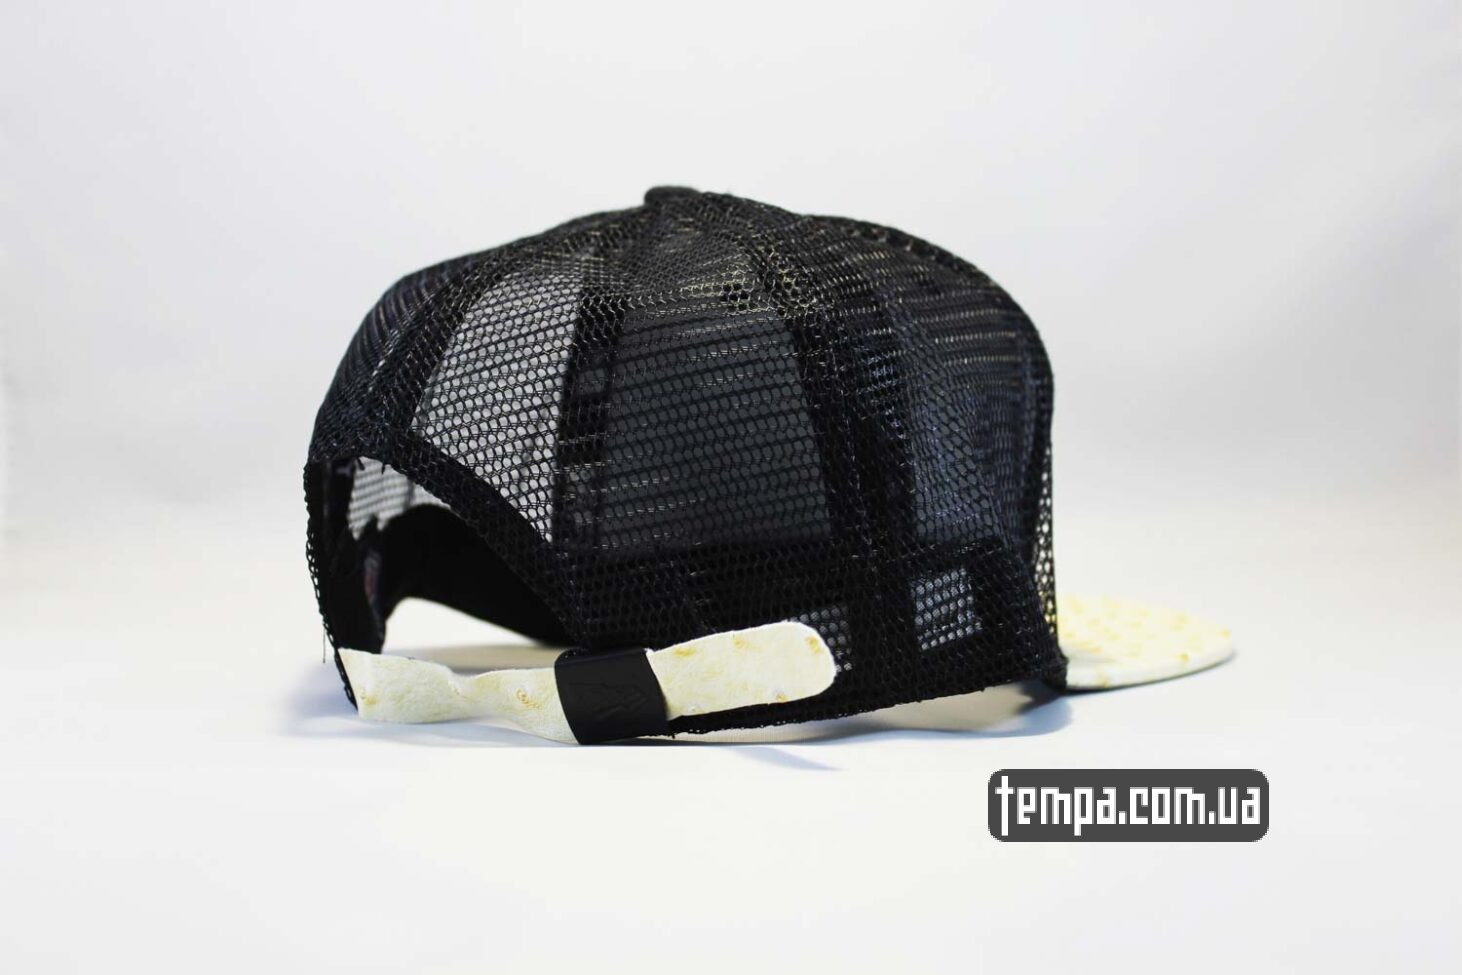 тракер летняя бейсболка кепка Trucker Snapback Raiders New Era 9fifty сетка